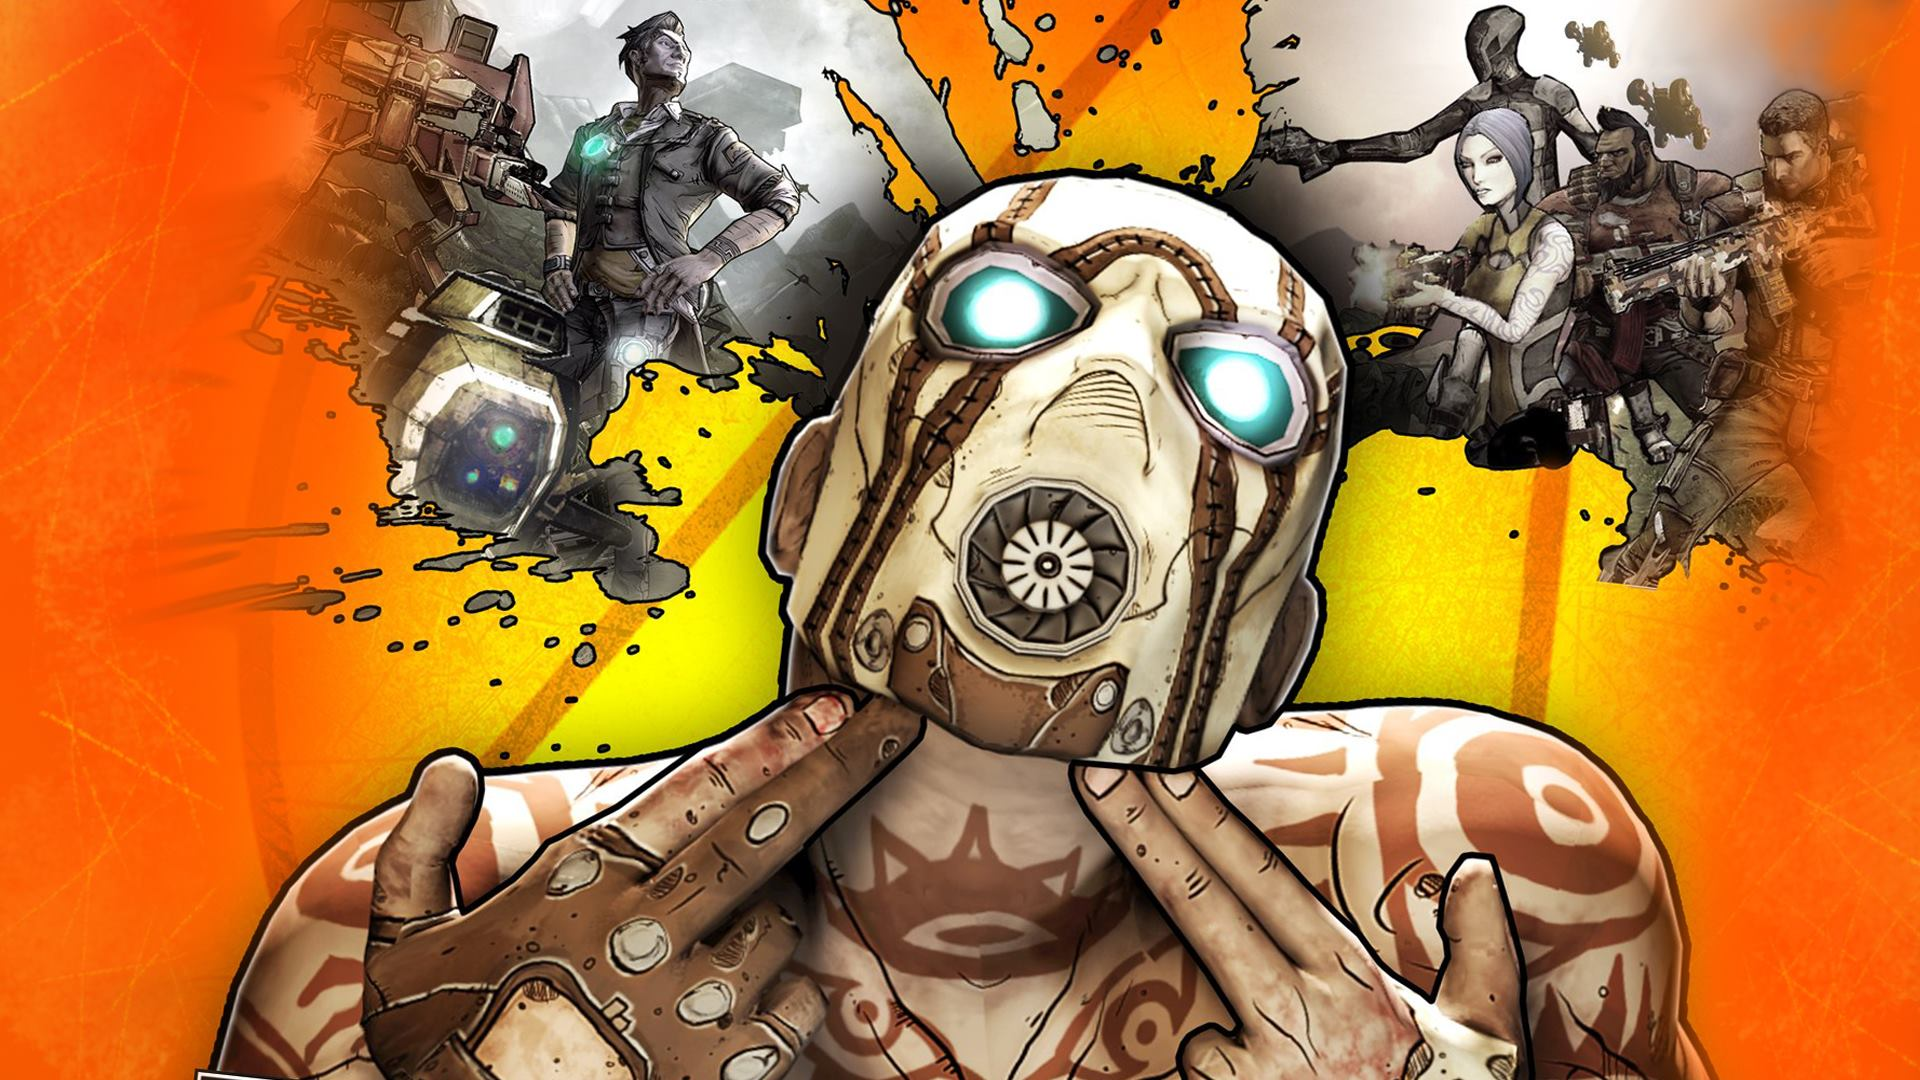 Wallpaper - borderlands-2 Wallpaper